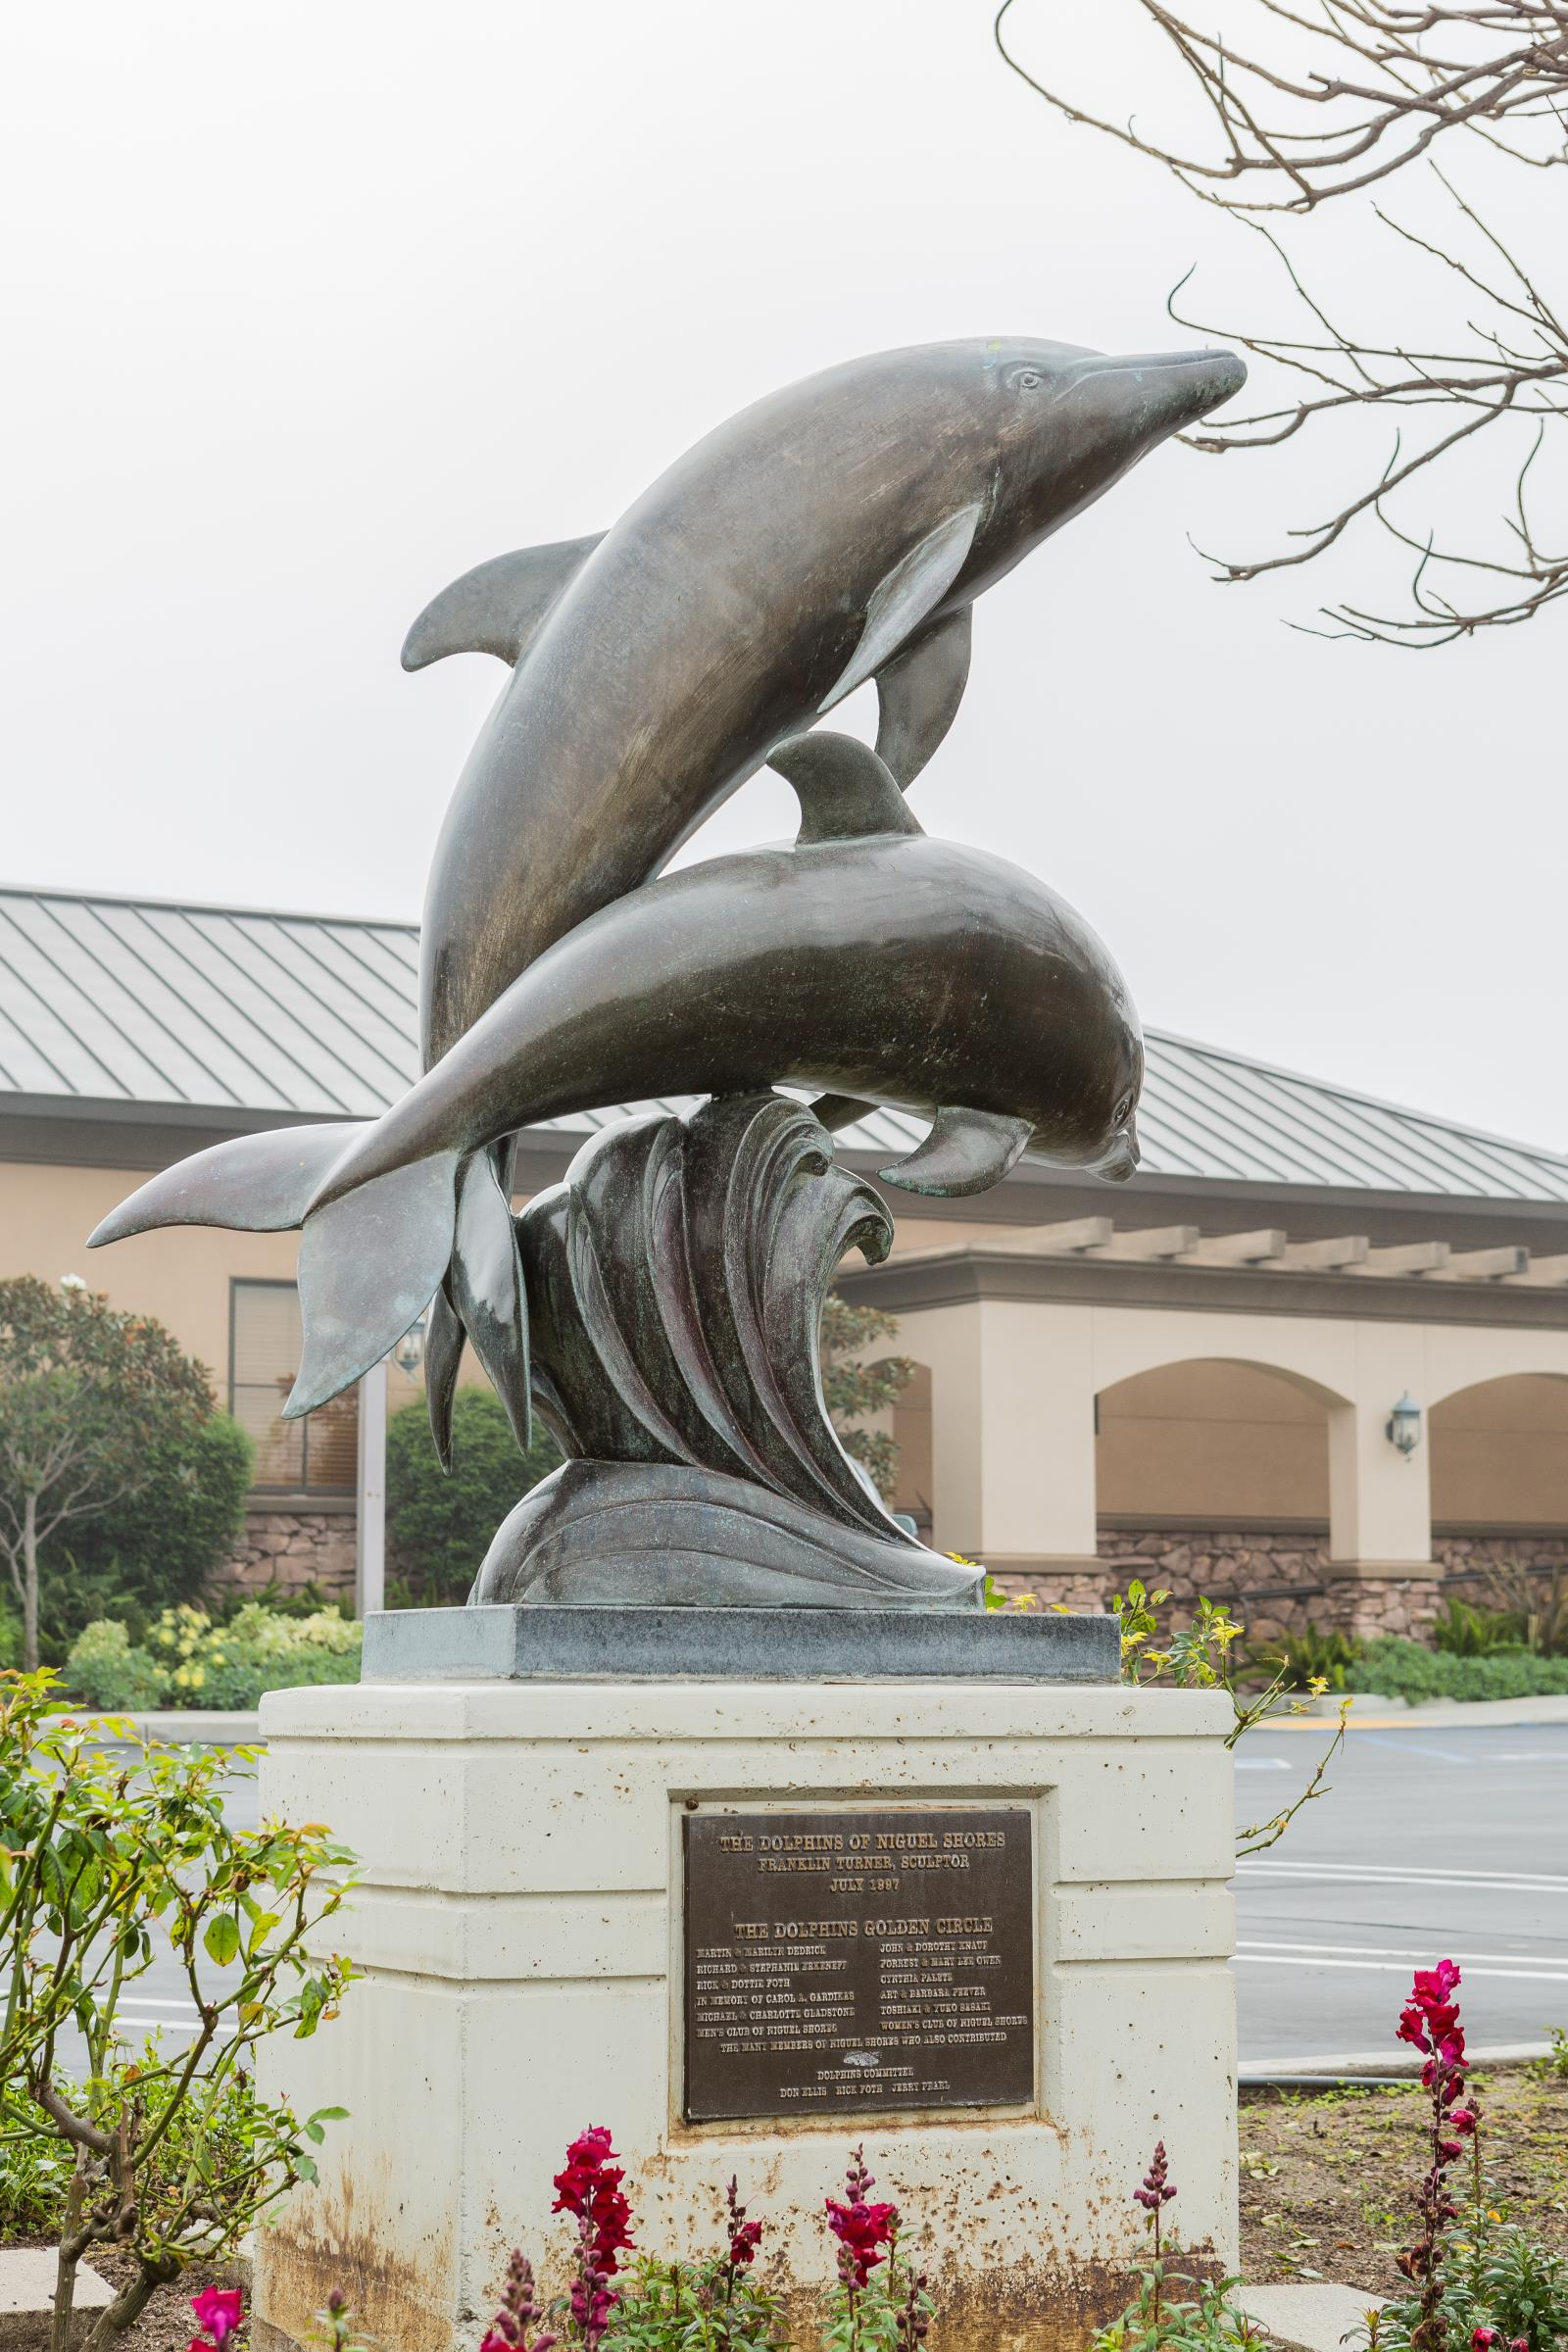 Sculpture of two dolphins- Niguel Shores